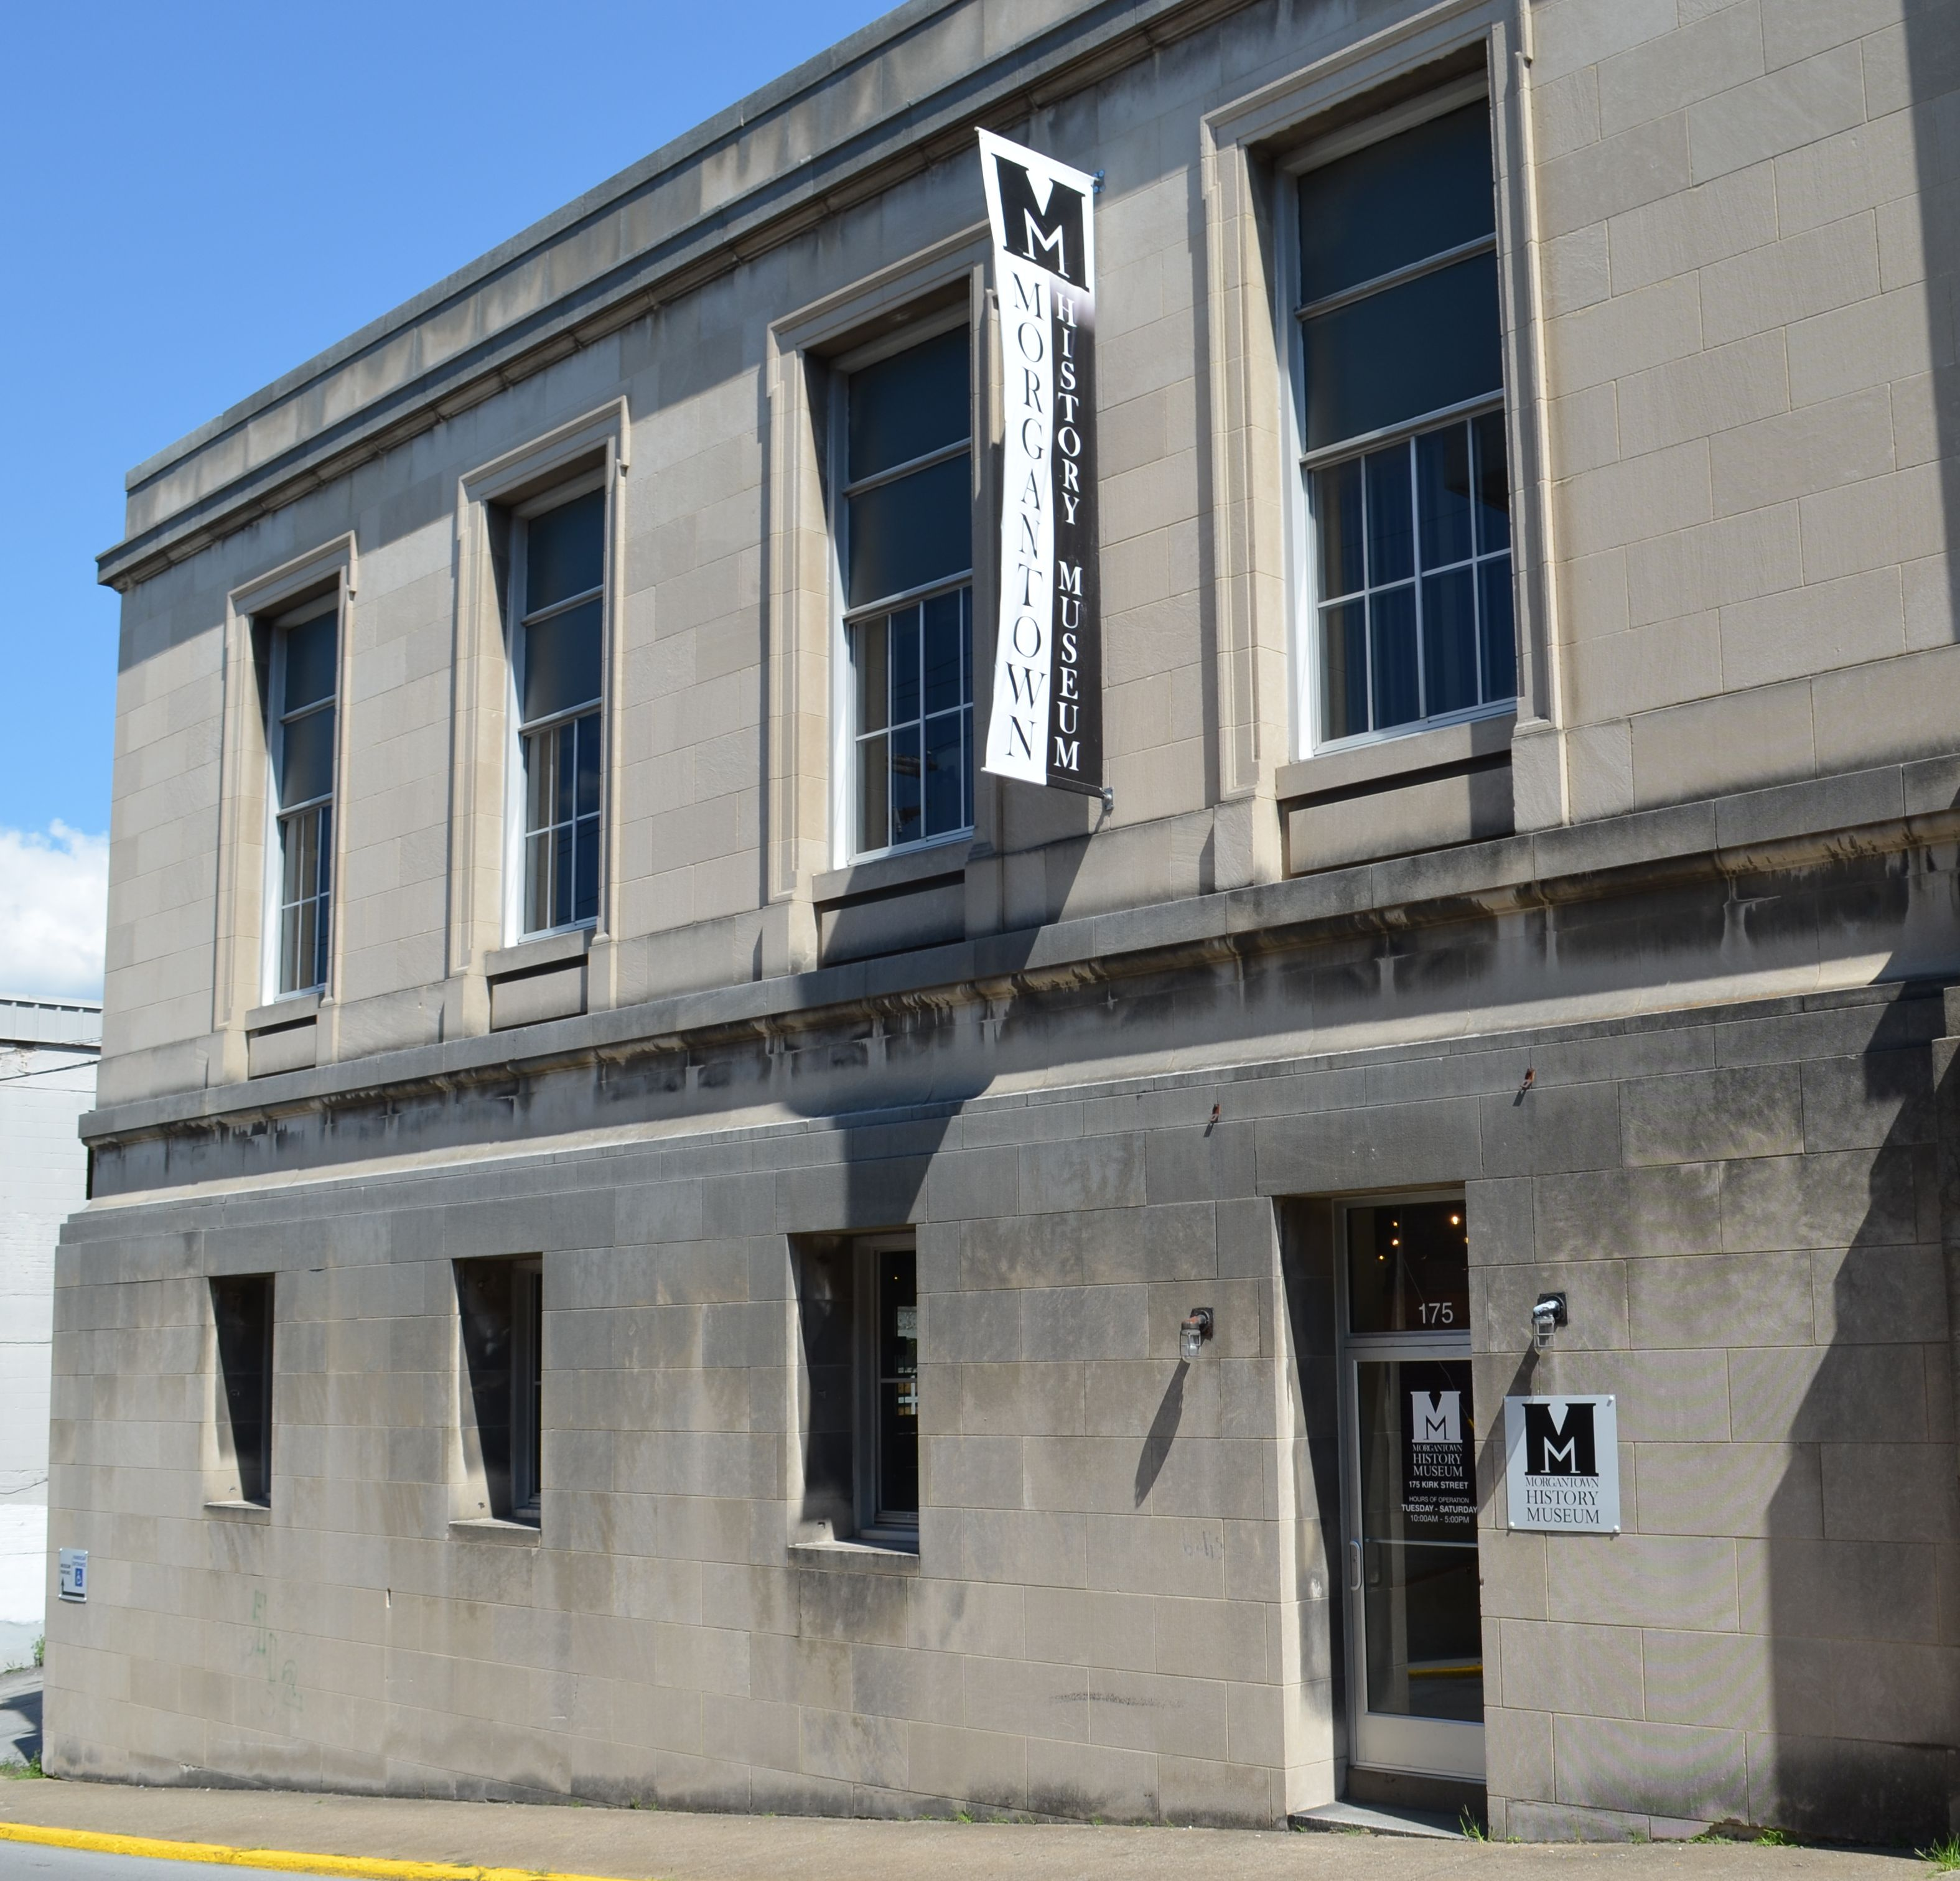 The Morgantown History Museum is located directly behind the Morgantown Arts Center.